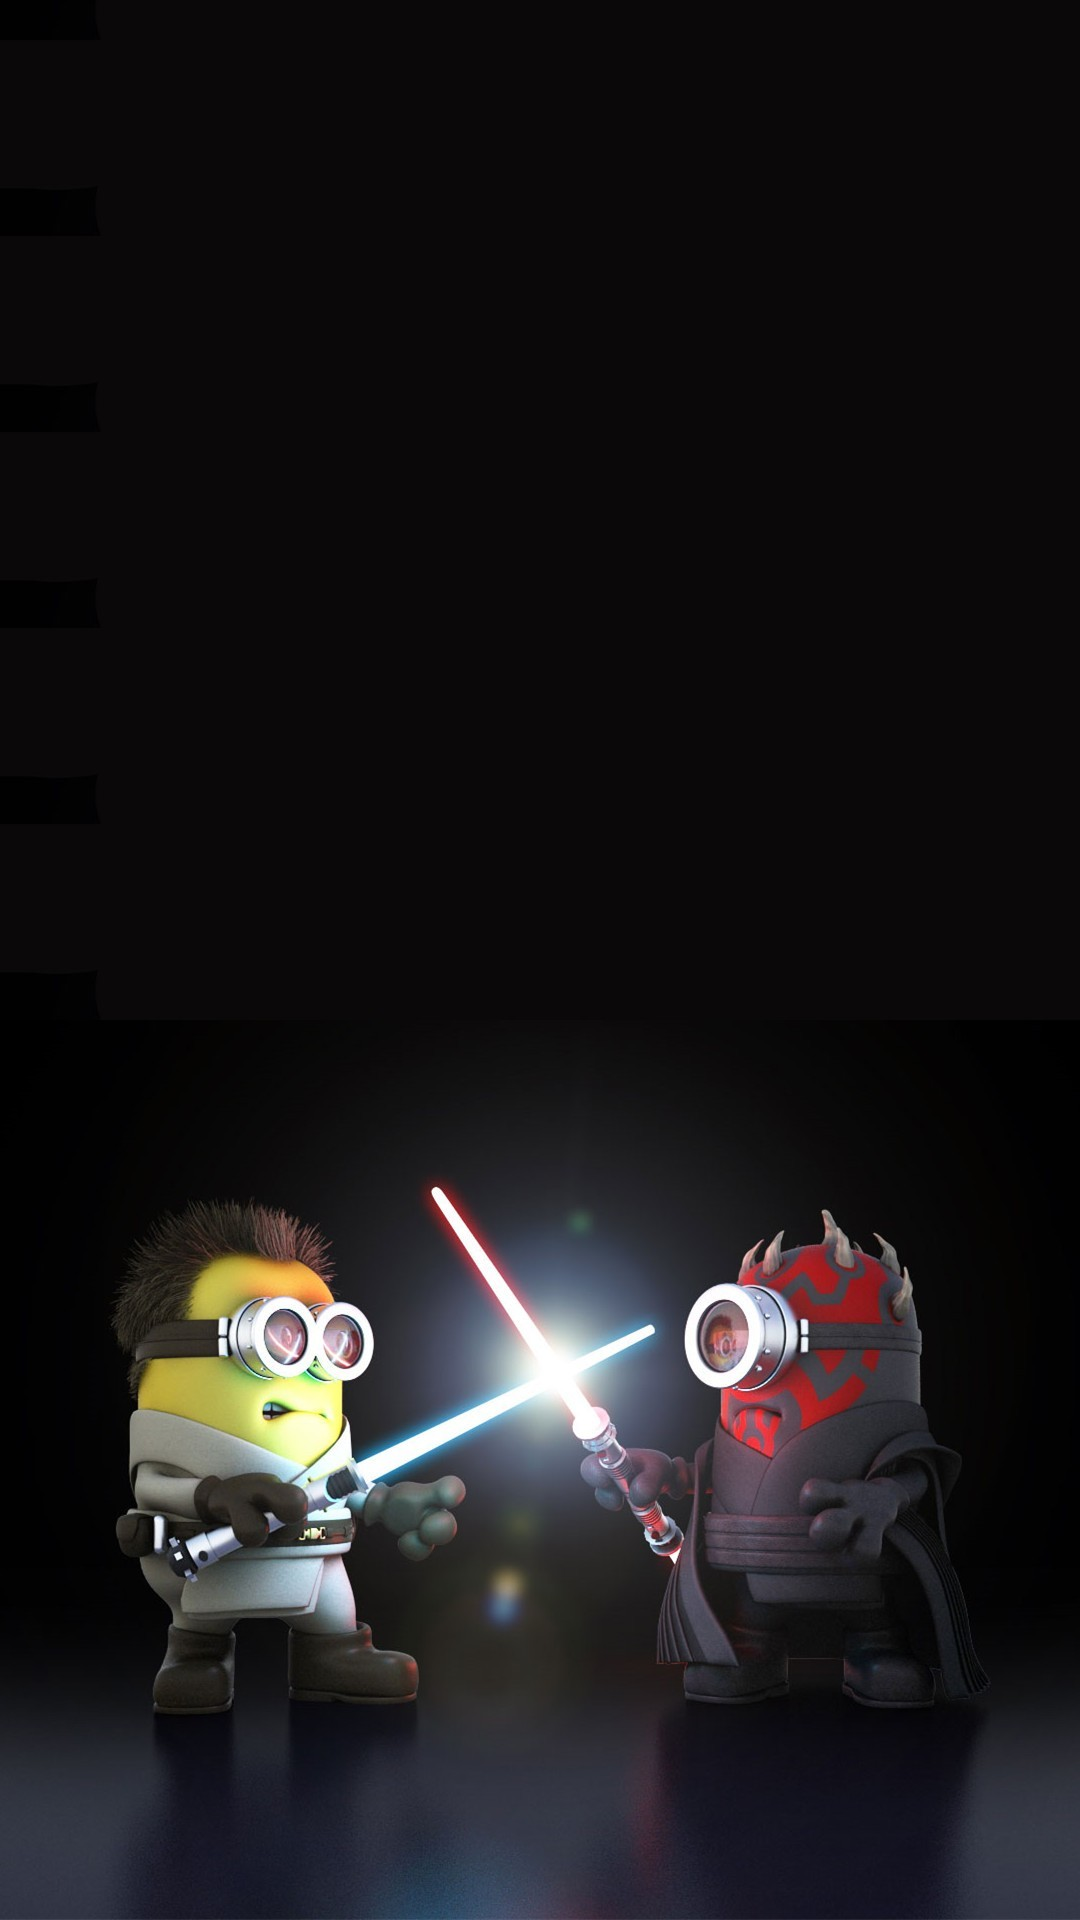 Vamers – Artistry – Fandom – Minion Wars Feel the Force – Star Wars and  Despicable Me Mash-Up – Minion Obi Wan versus Darth Maul